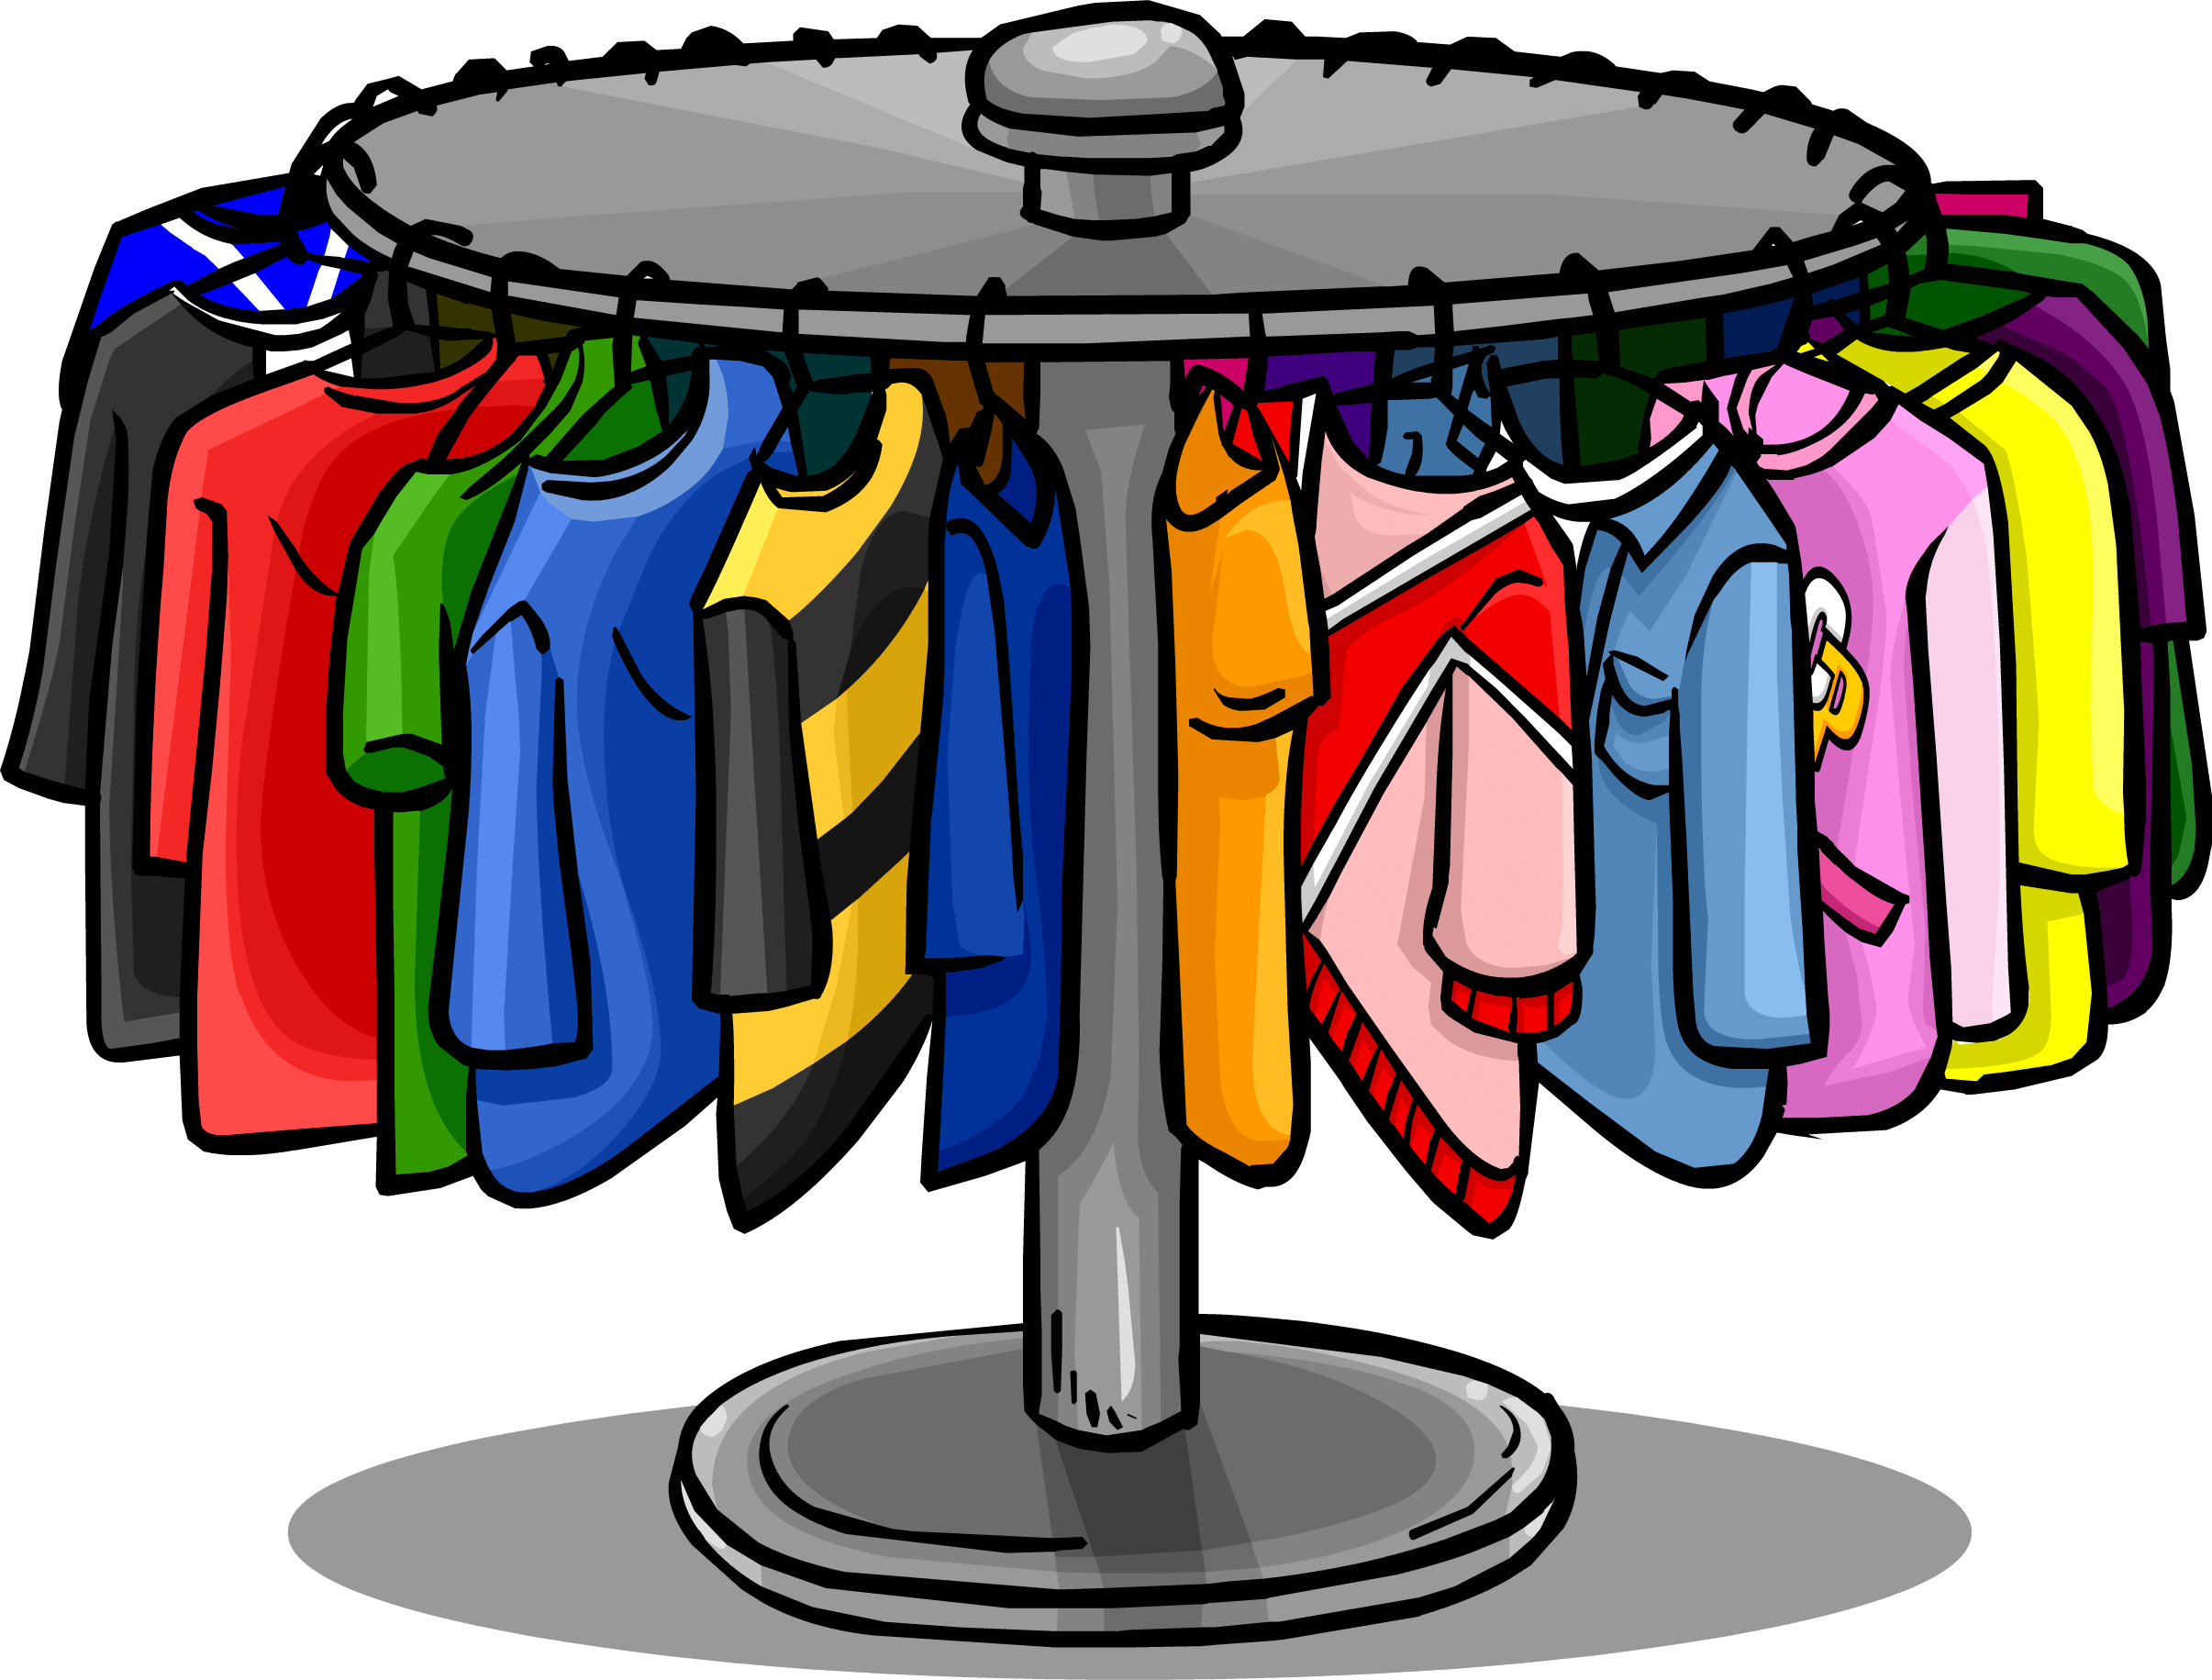 Hanger clipart hanged clothes. Nice frames illustrations hd